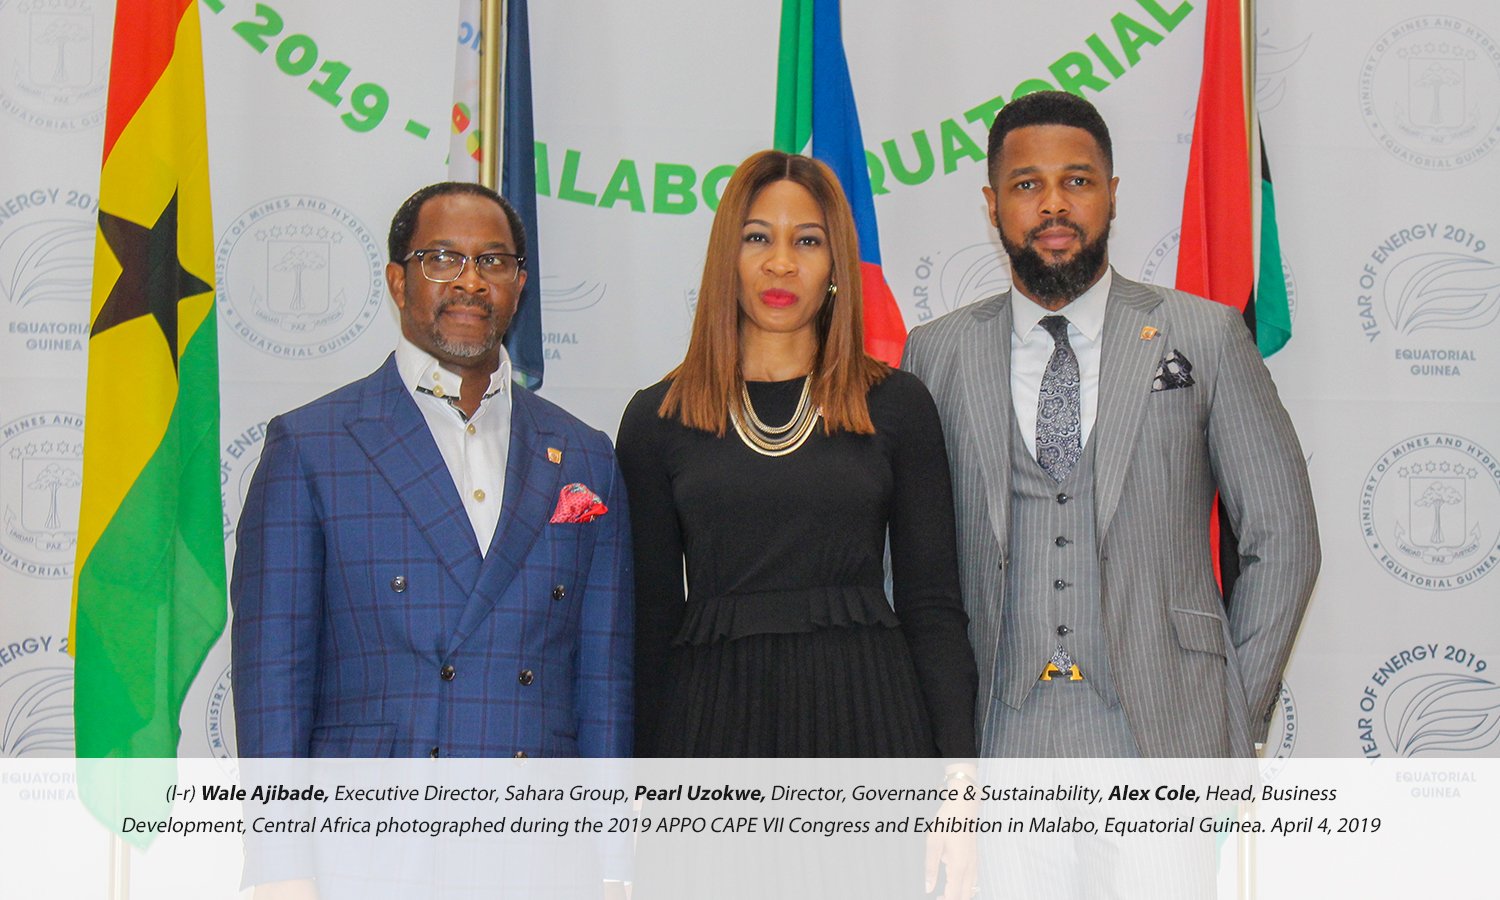 (l-r) Wale Ajibade, Executive Director, Sahara Group, Pearl Uzokwe, Director, Governance & Sustainability, Alex Cole, Head, Business Development, Central Africa photographed during the 2019 APPO CAPE VII Congress and Exhibition in Malabo, Equatorial Guinea. April 4, 2019